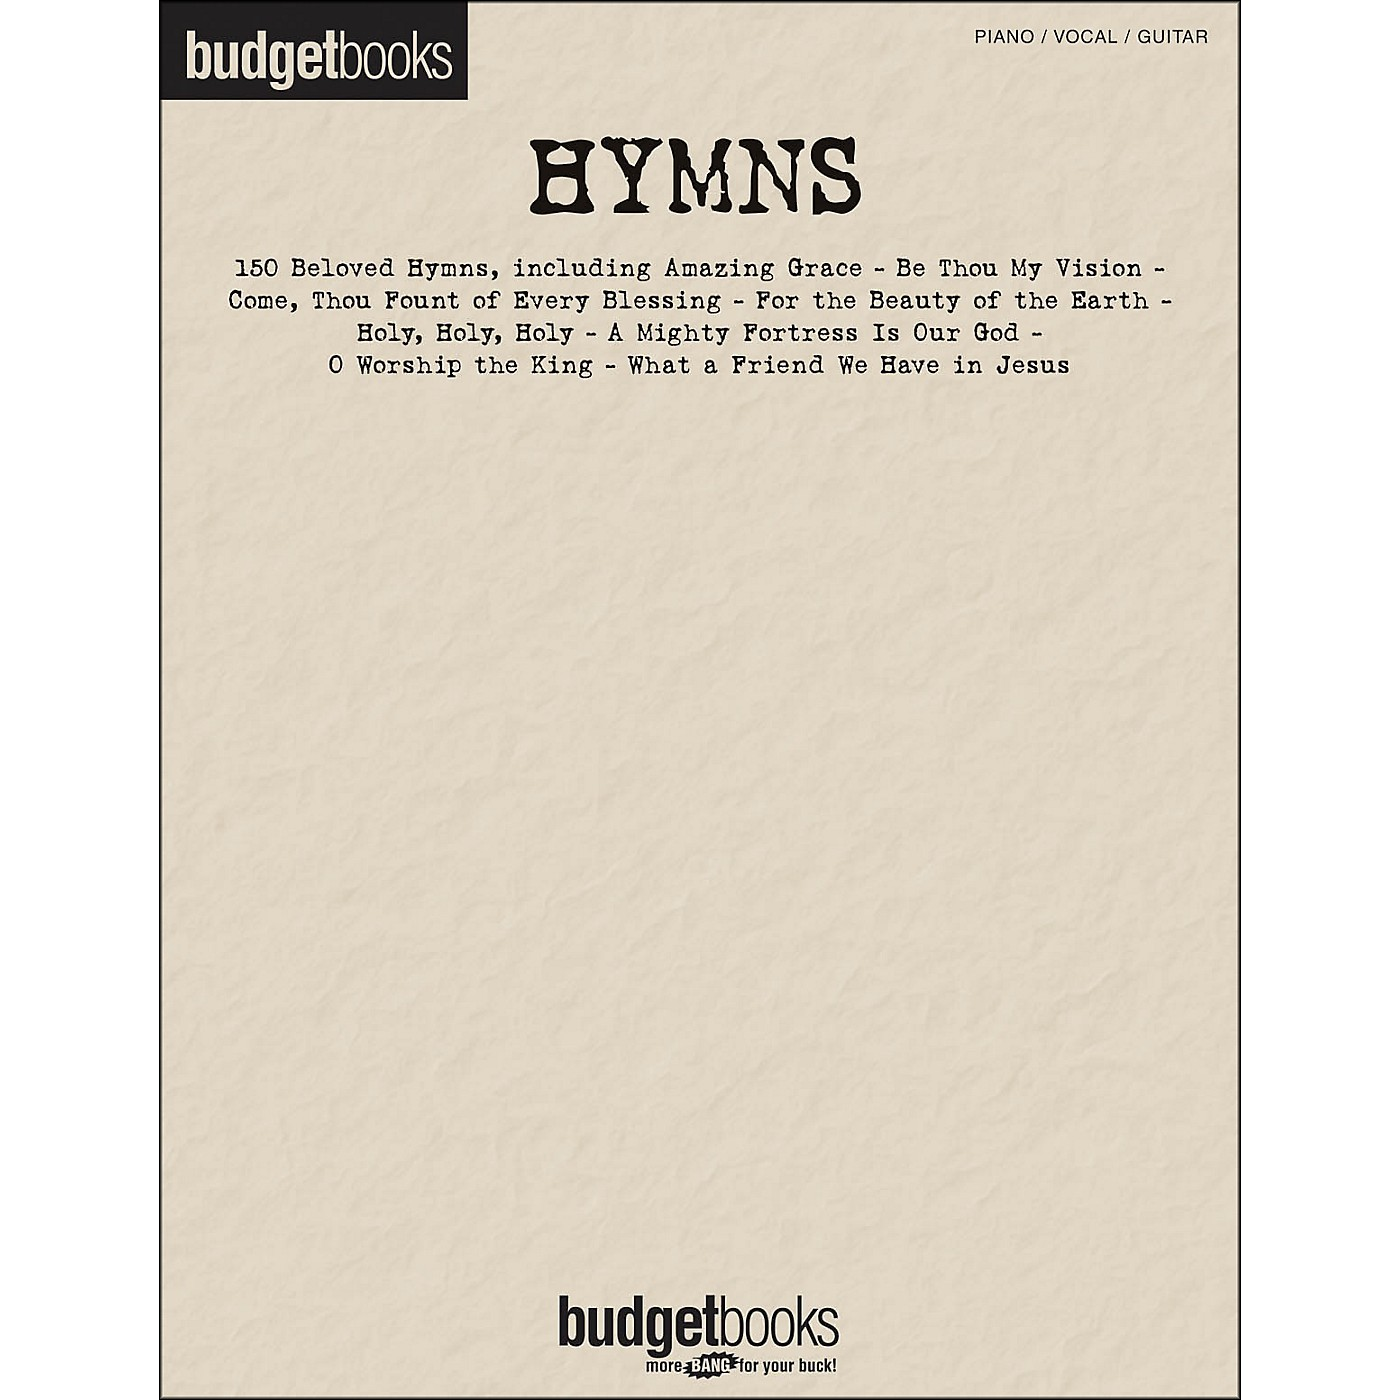 Hal Leonard Hymns - Budget Books arranged for piano, vocal, and guitar (P/V/G) thumbnail